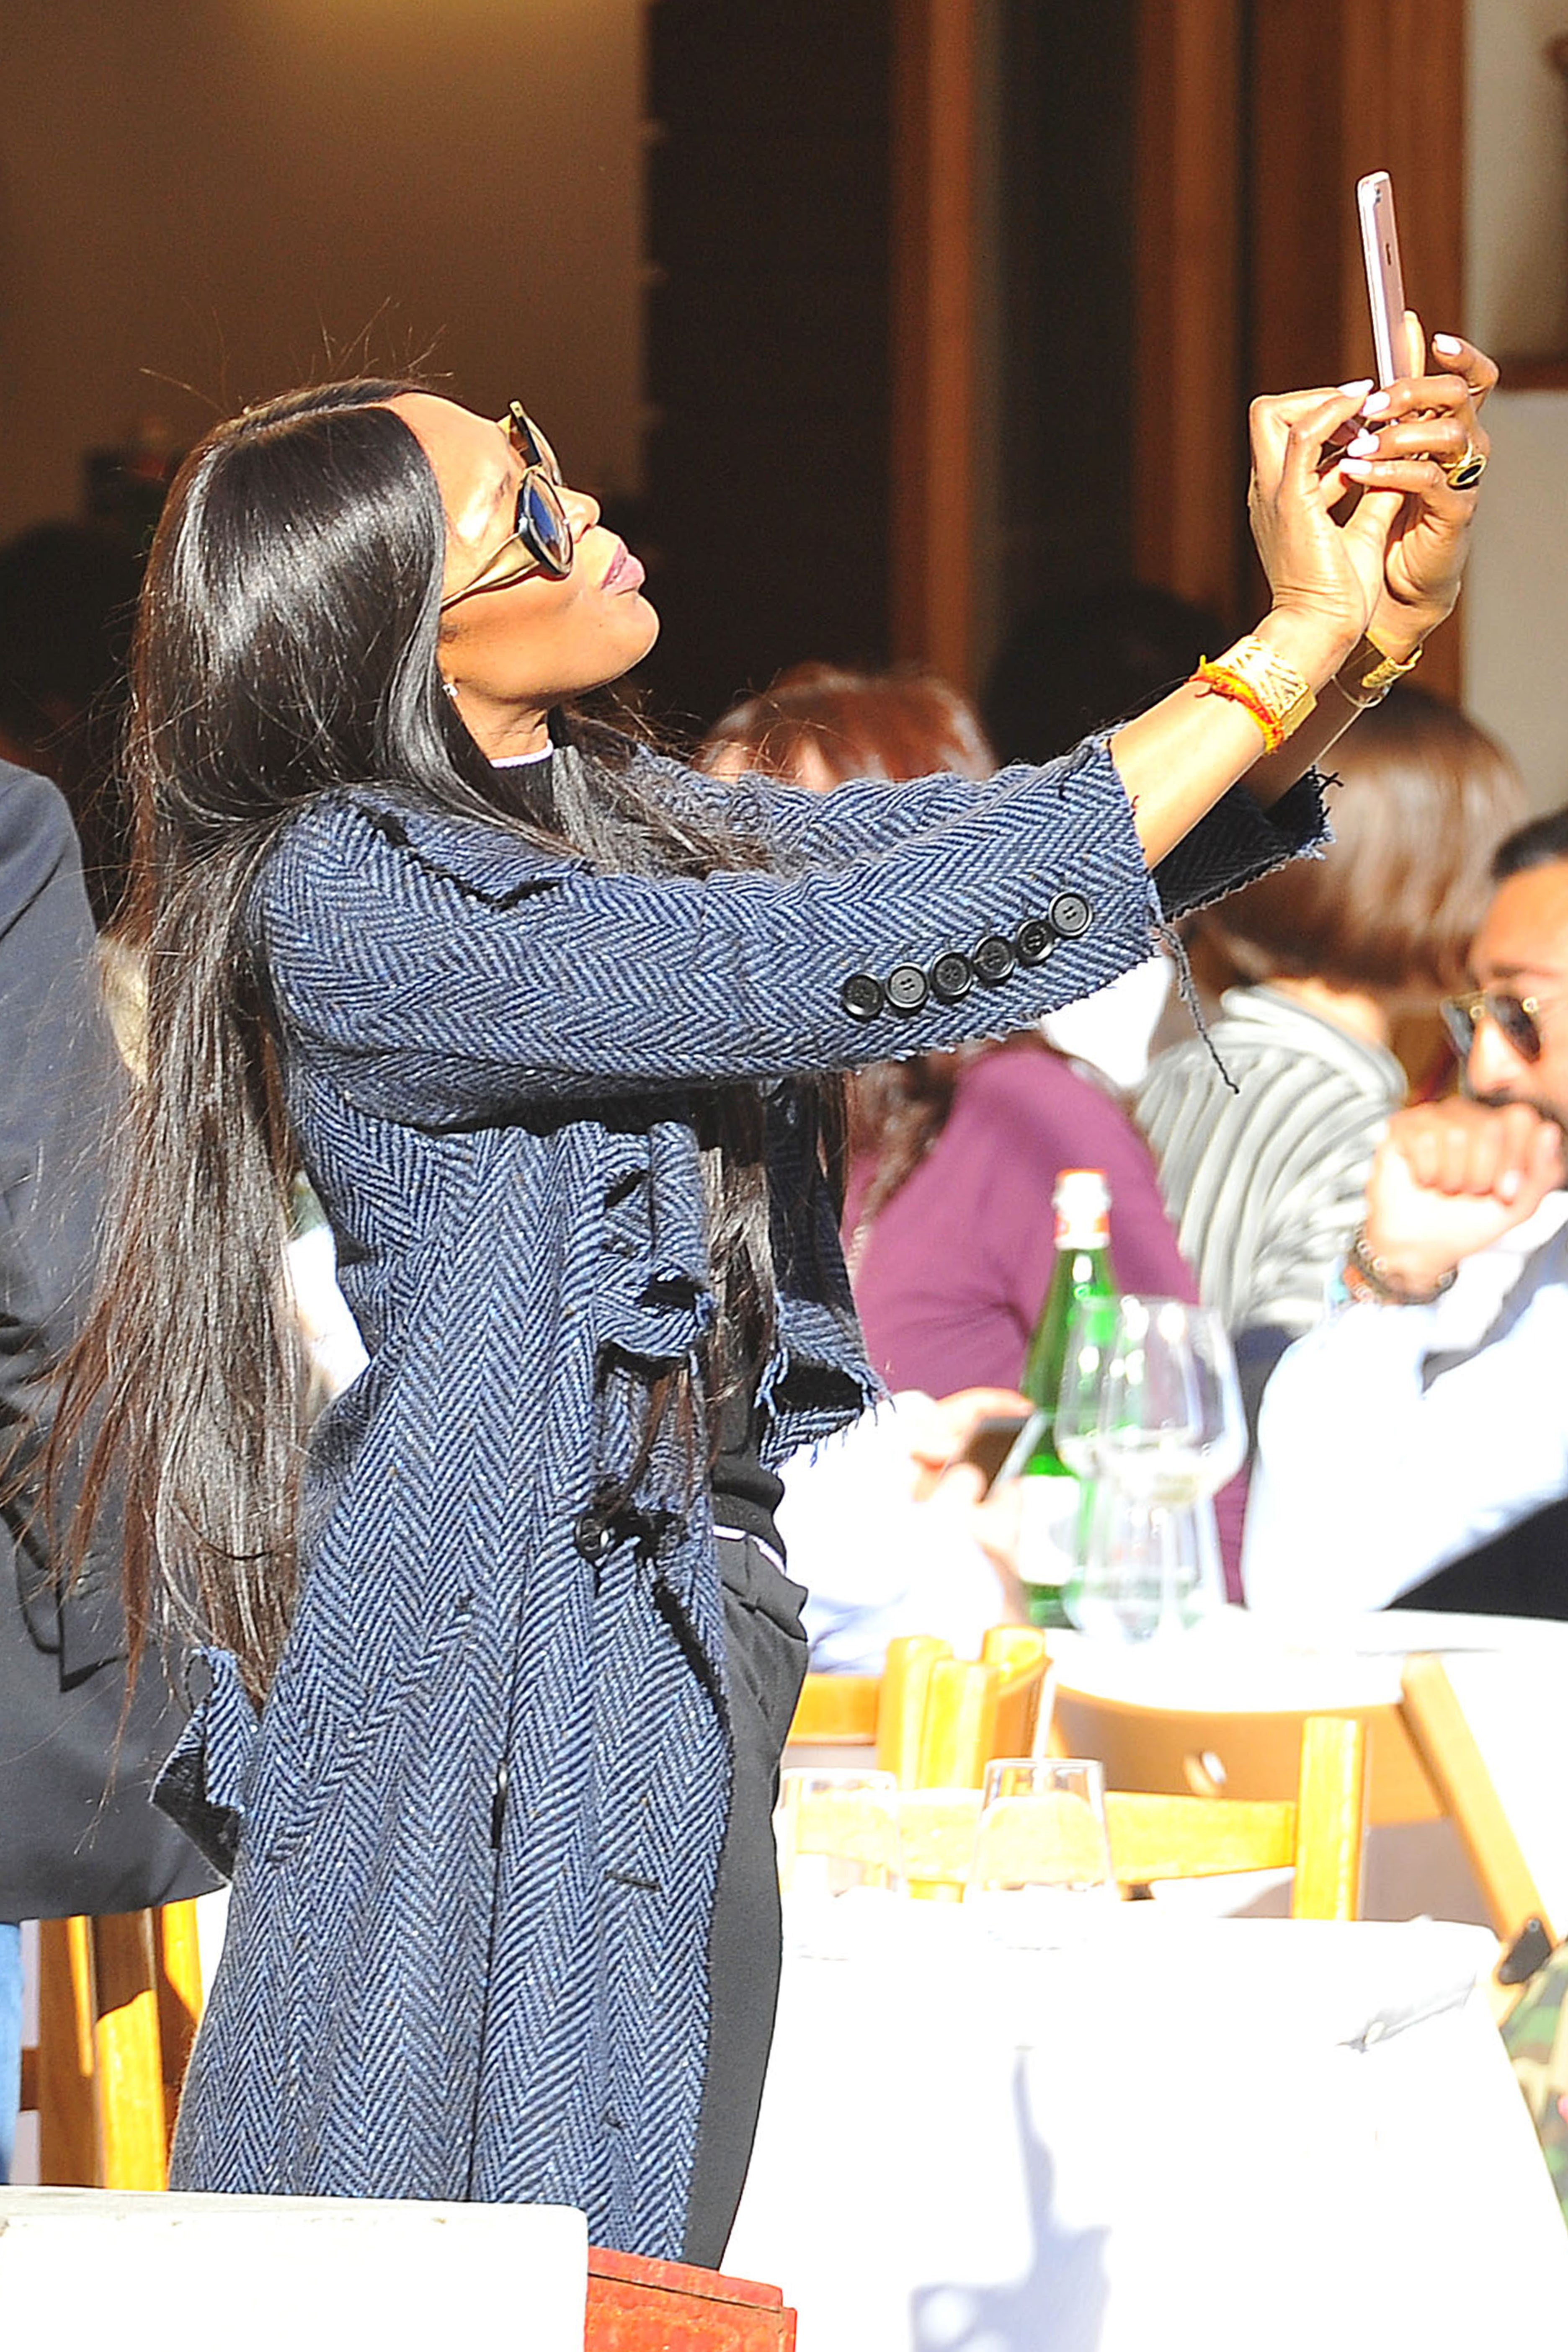 EXCLUSIVE Naomi Campbell Eats Pasta and Takes Selfies in Italy with Diego Della Valle